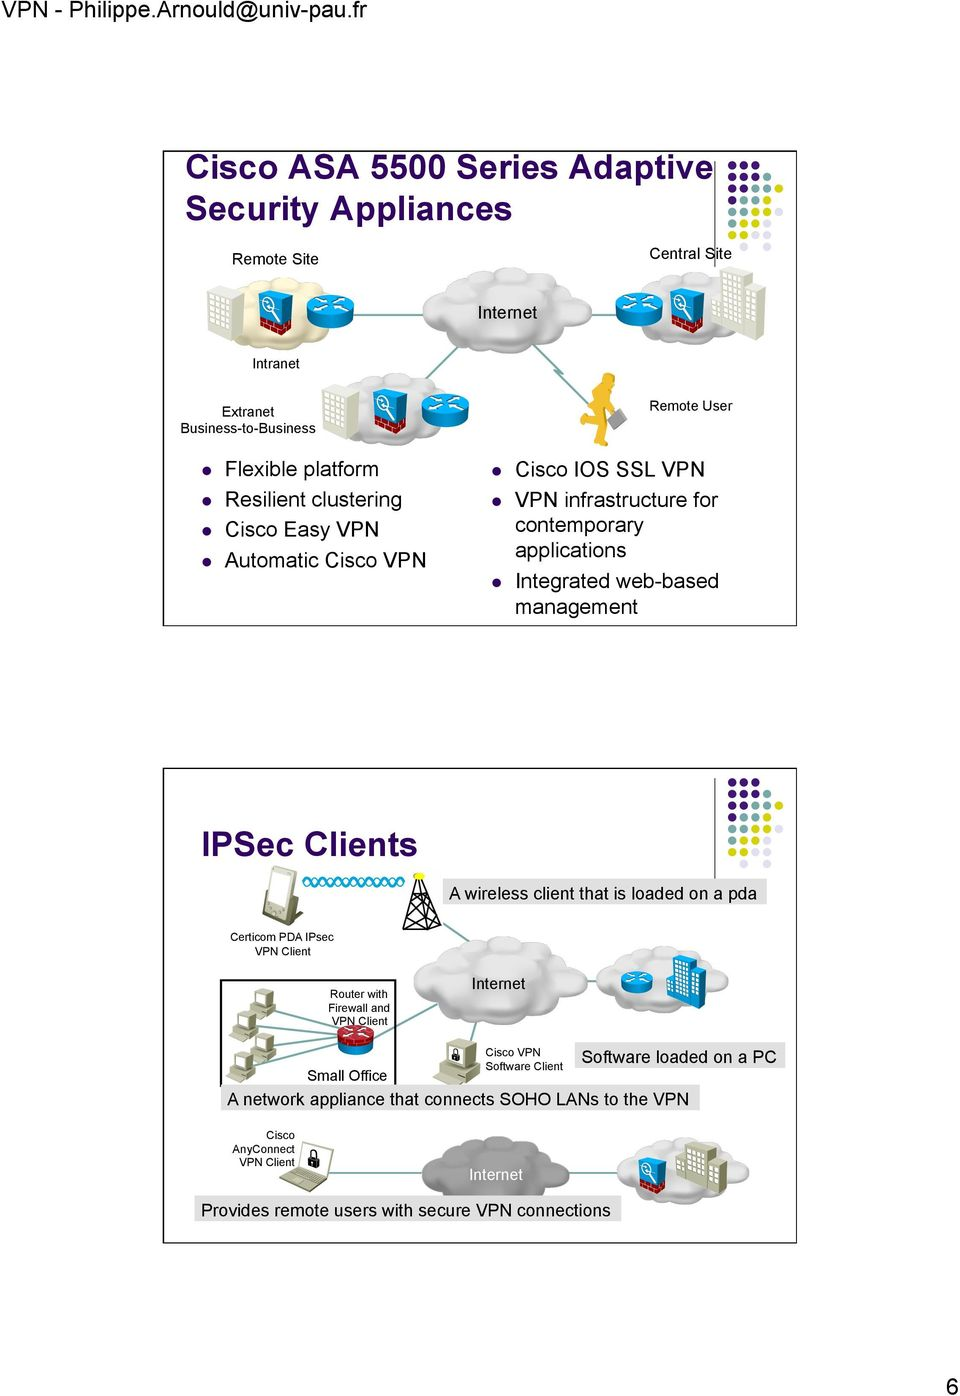 IPSec Clients A wireless client that is loaded on a pda Certicom PDA IPsec VPN Client Router with Firewall and VPN Client Internet Cisco VPN Software loaded on a